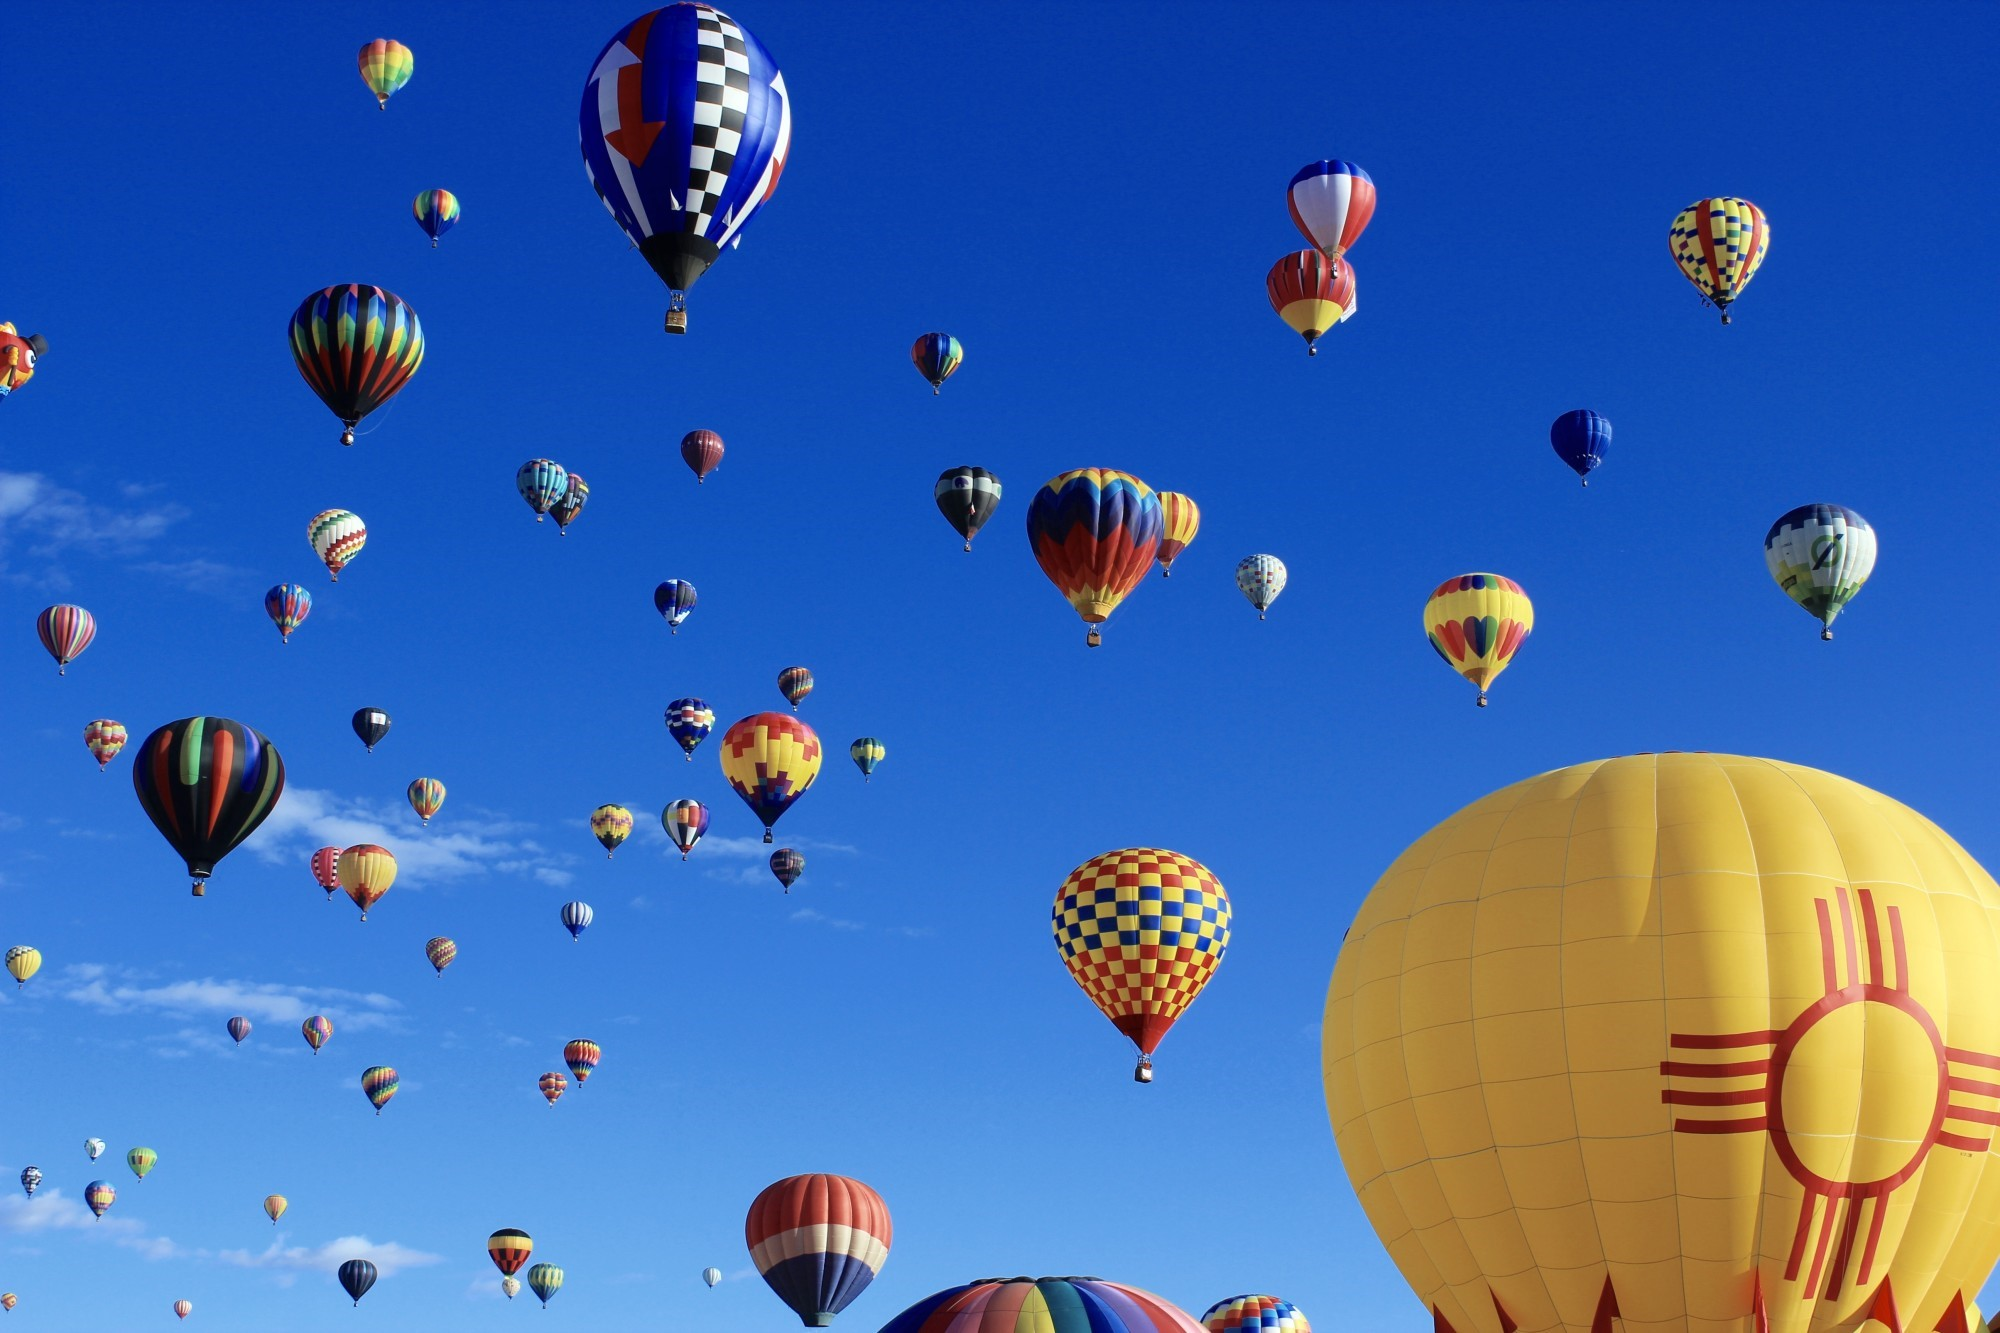 How High Can a Hot Air Balloon Go - This is What You Should Expect